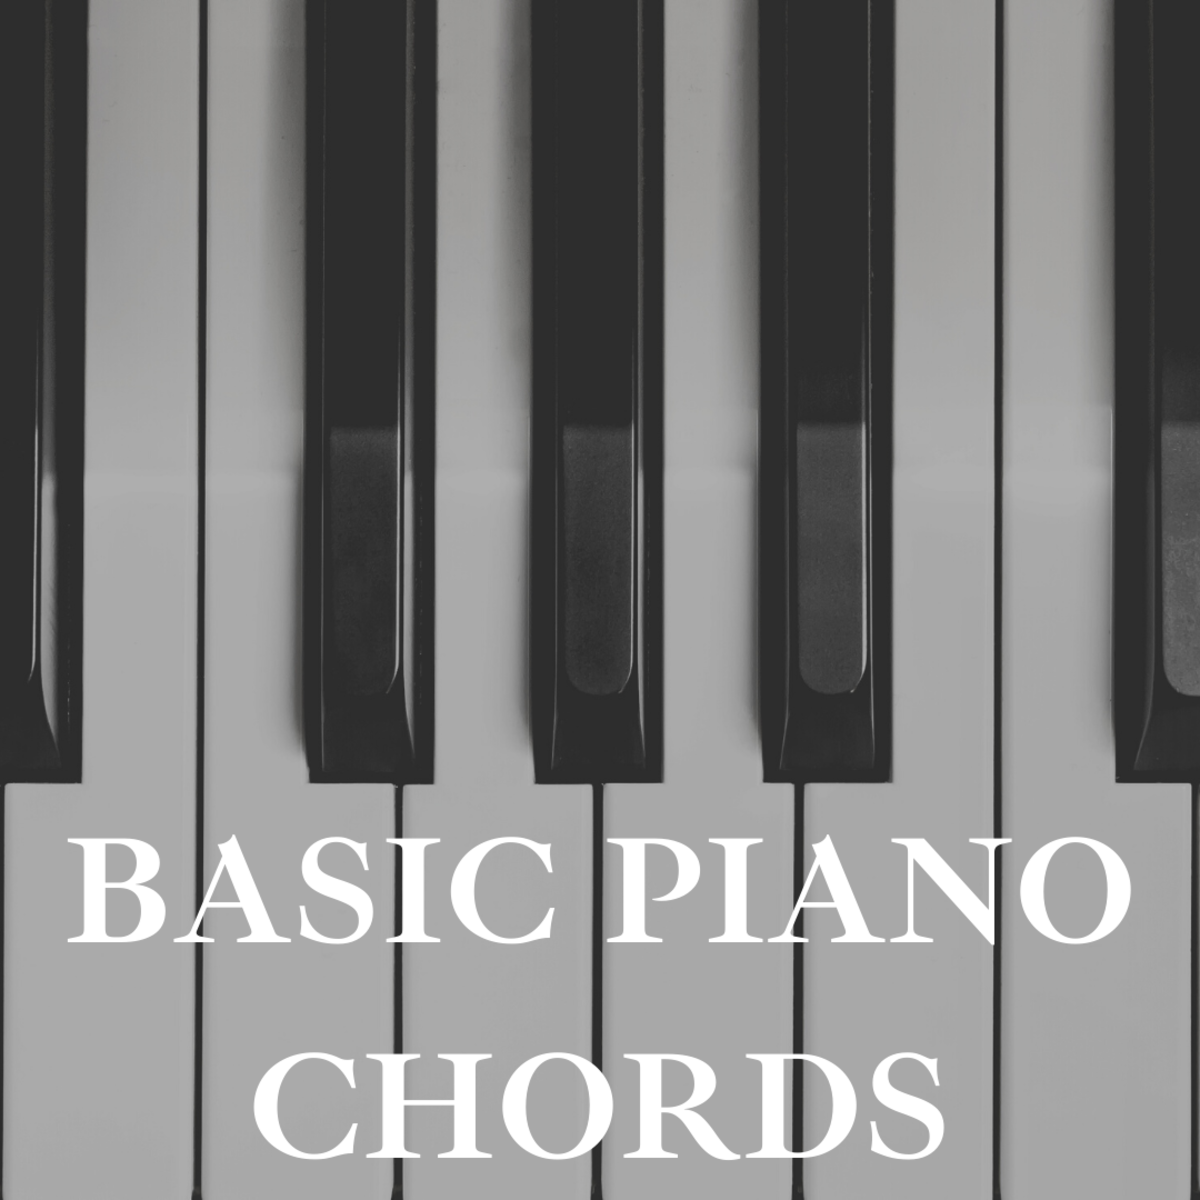 Read on to learn the basics of piano chords!